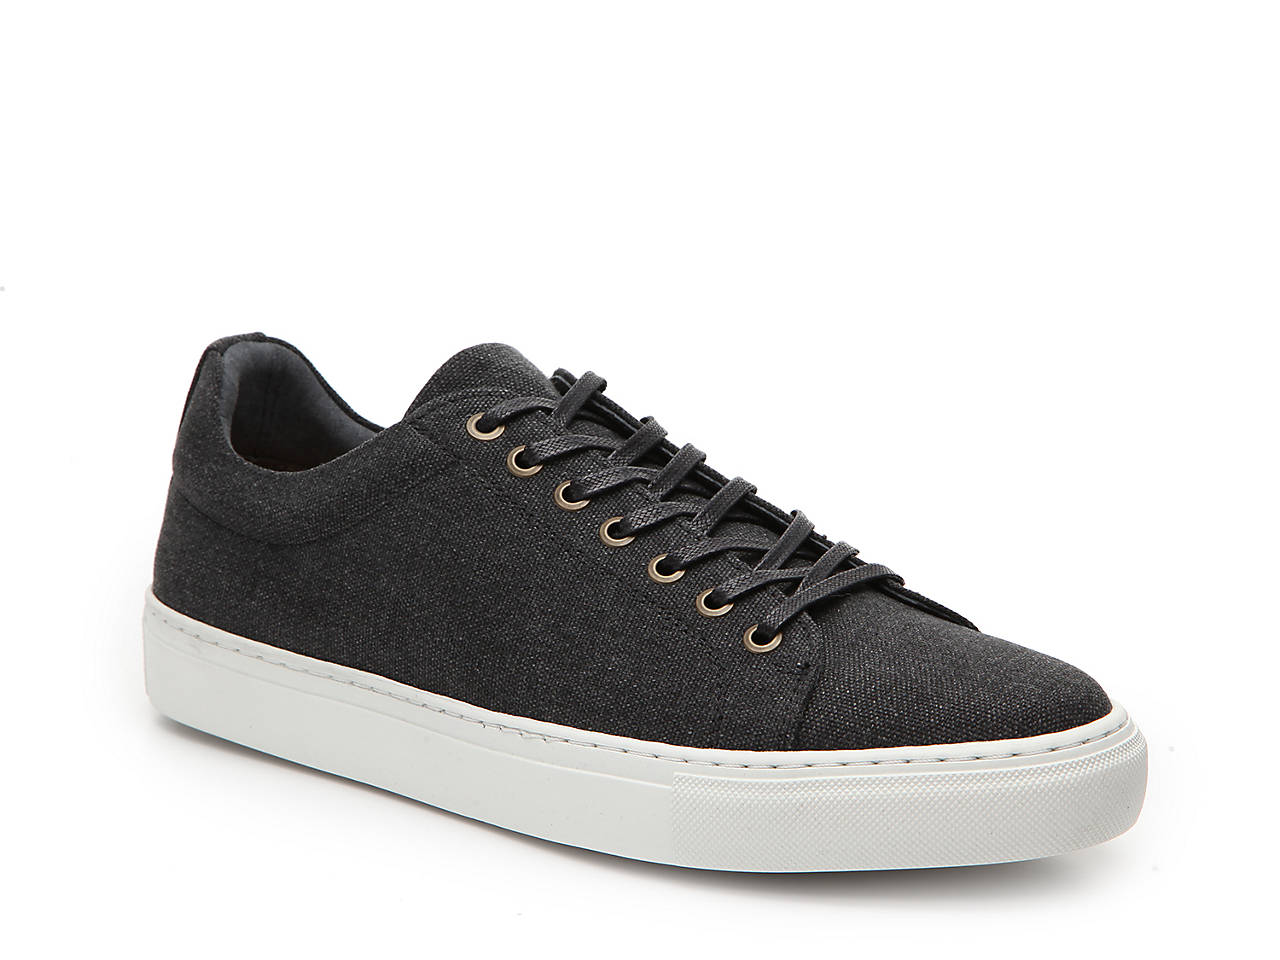 Mark Sneaker by Supply Lab